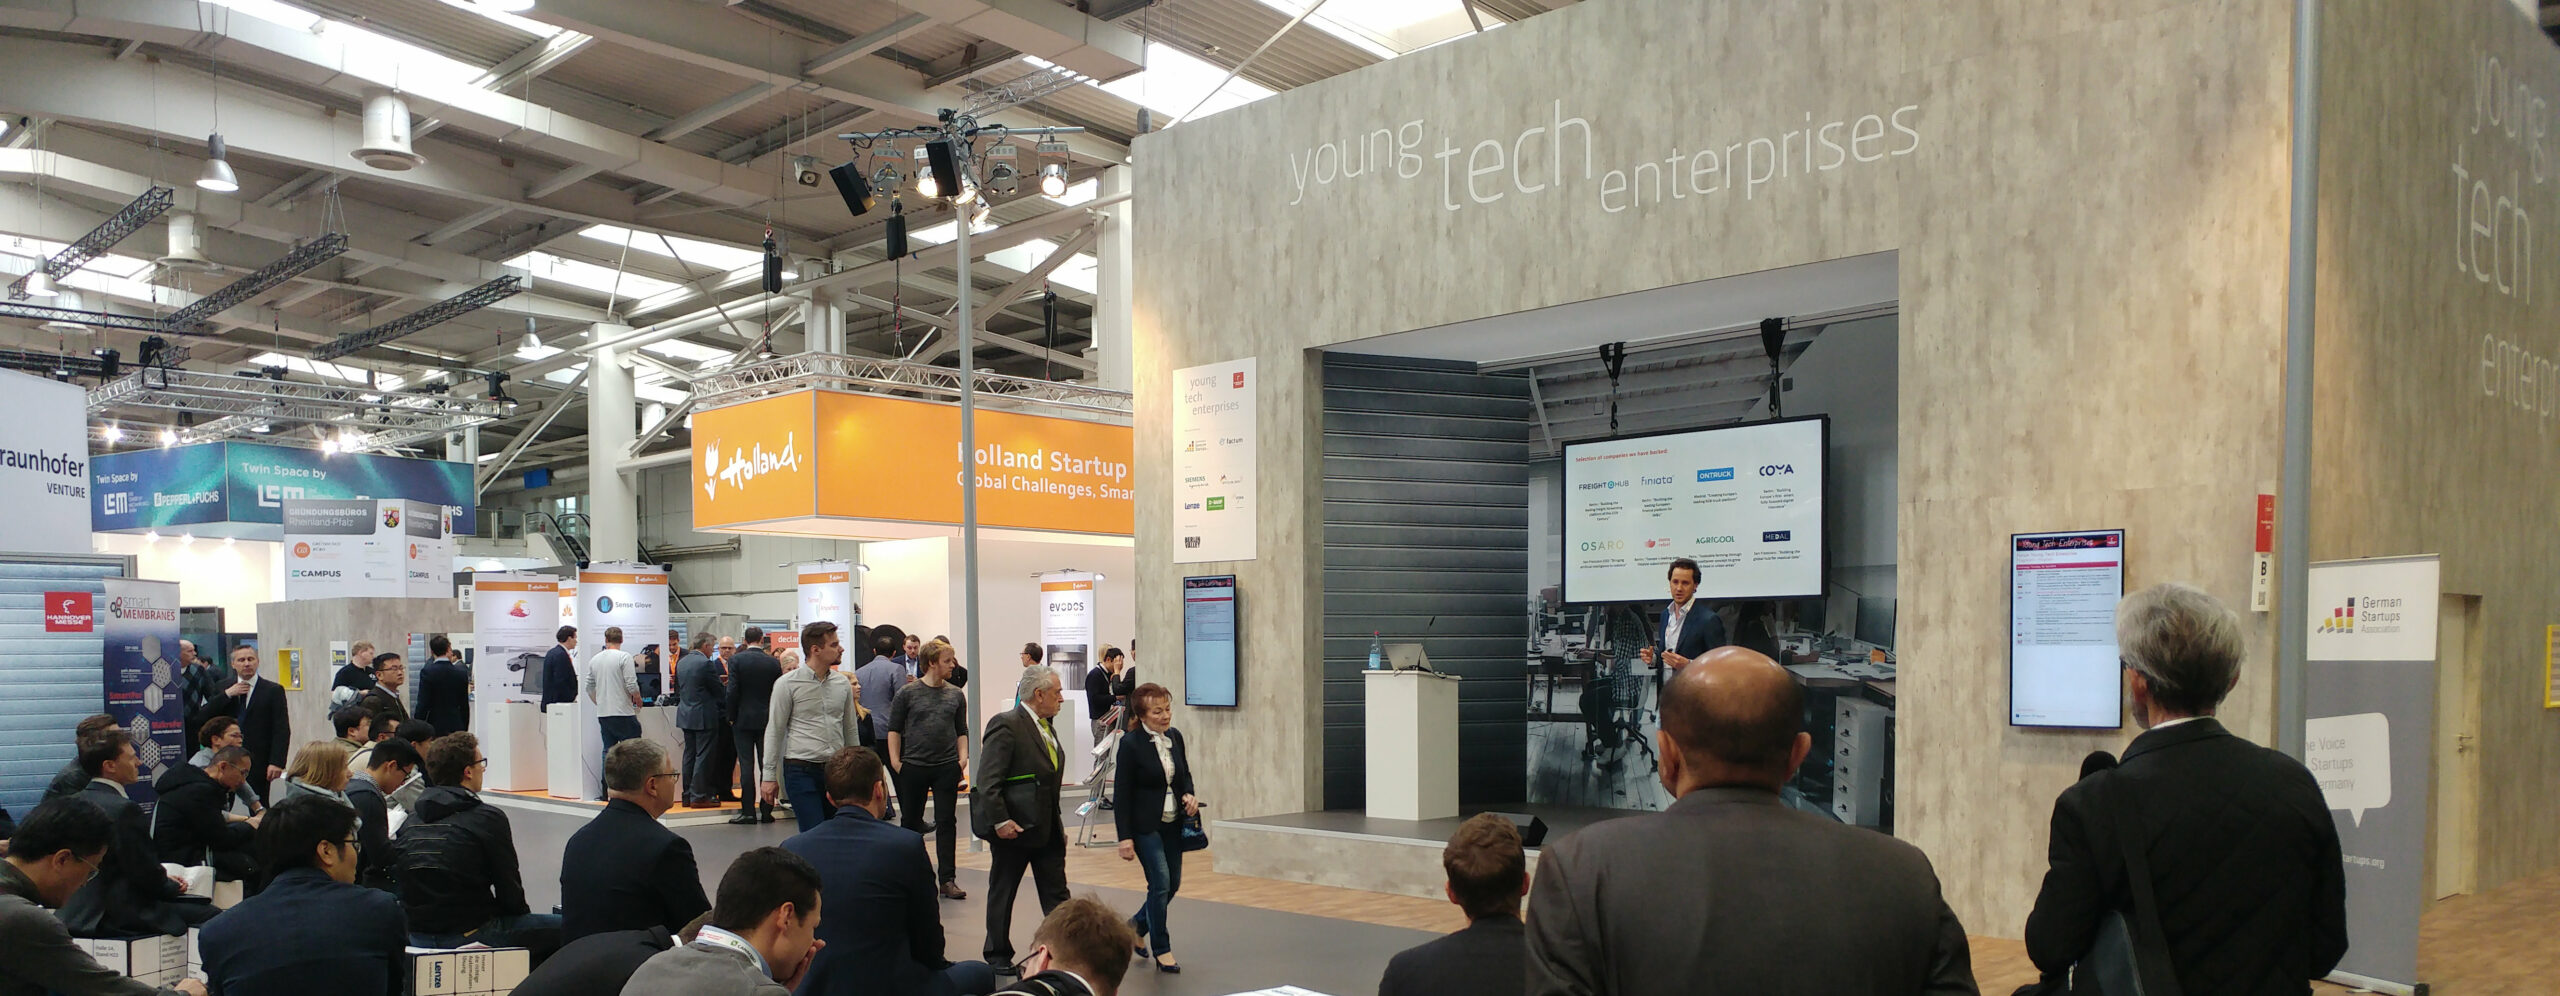 "Startup-Forum ""young tech enterprises"" auf der HANNOVER MESSE 2018"